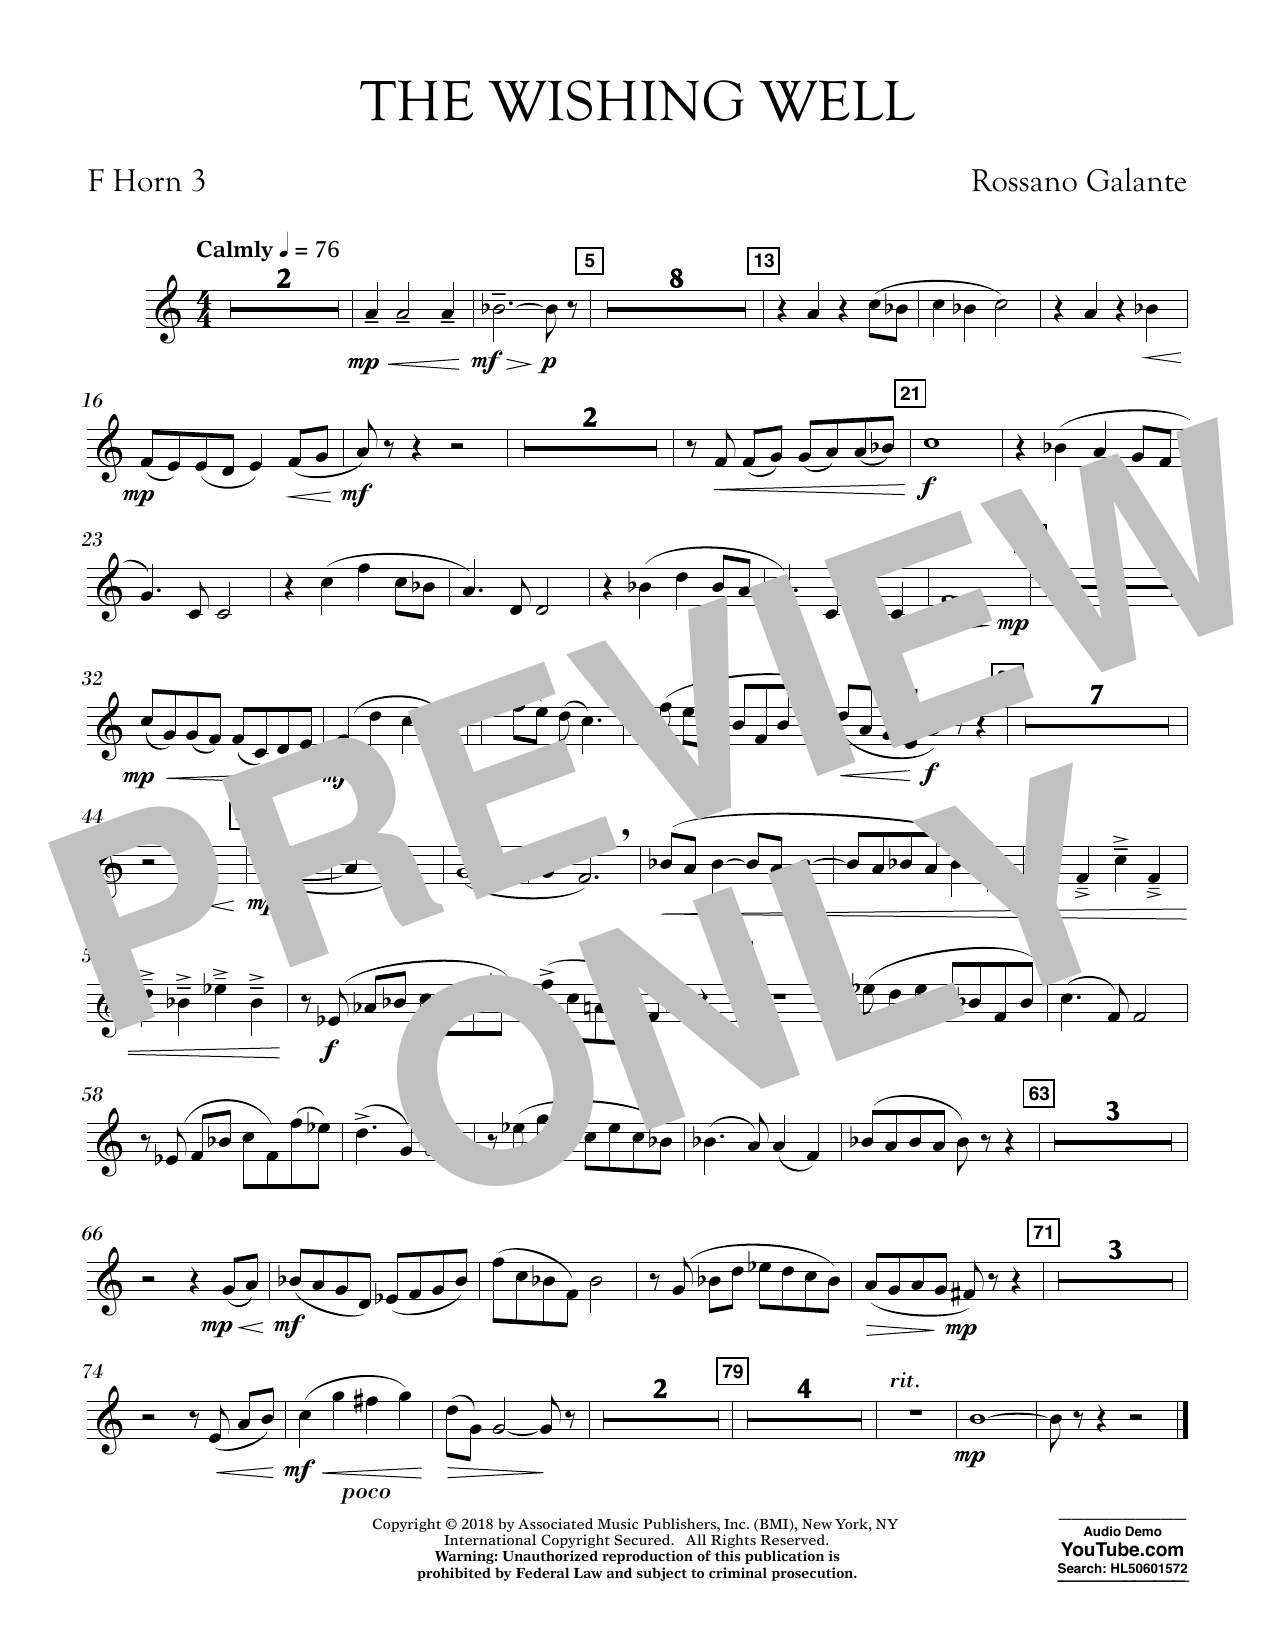 Rossano Galante The Wishing Well - F Horn 3 sheet music preview music notes and score for Concert Band including 1 page(s)